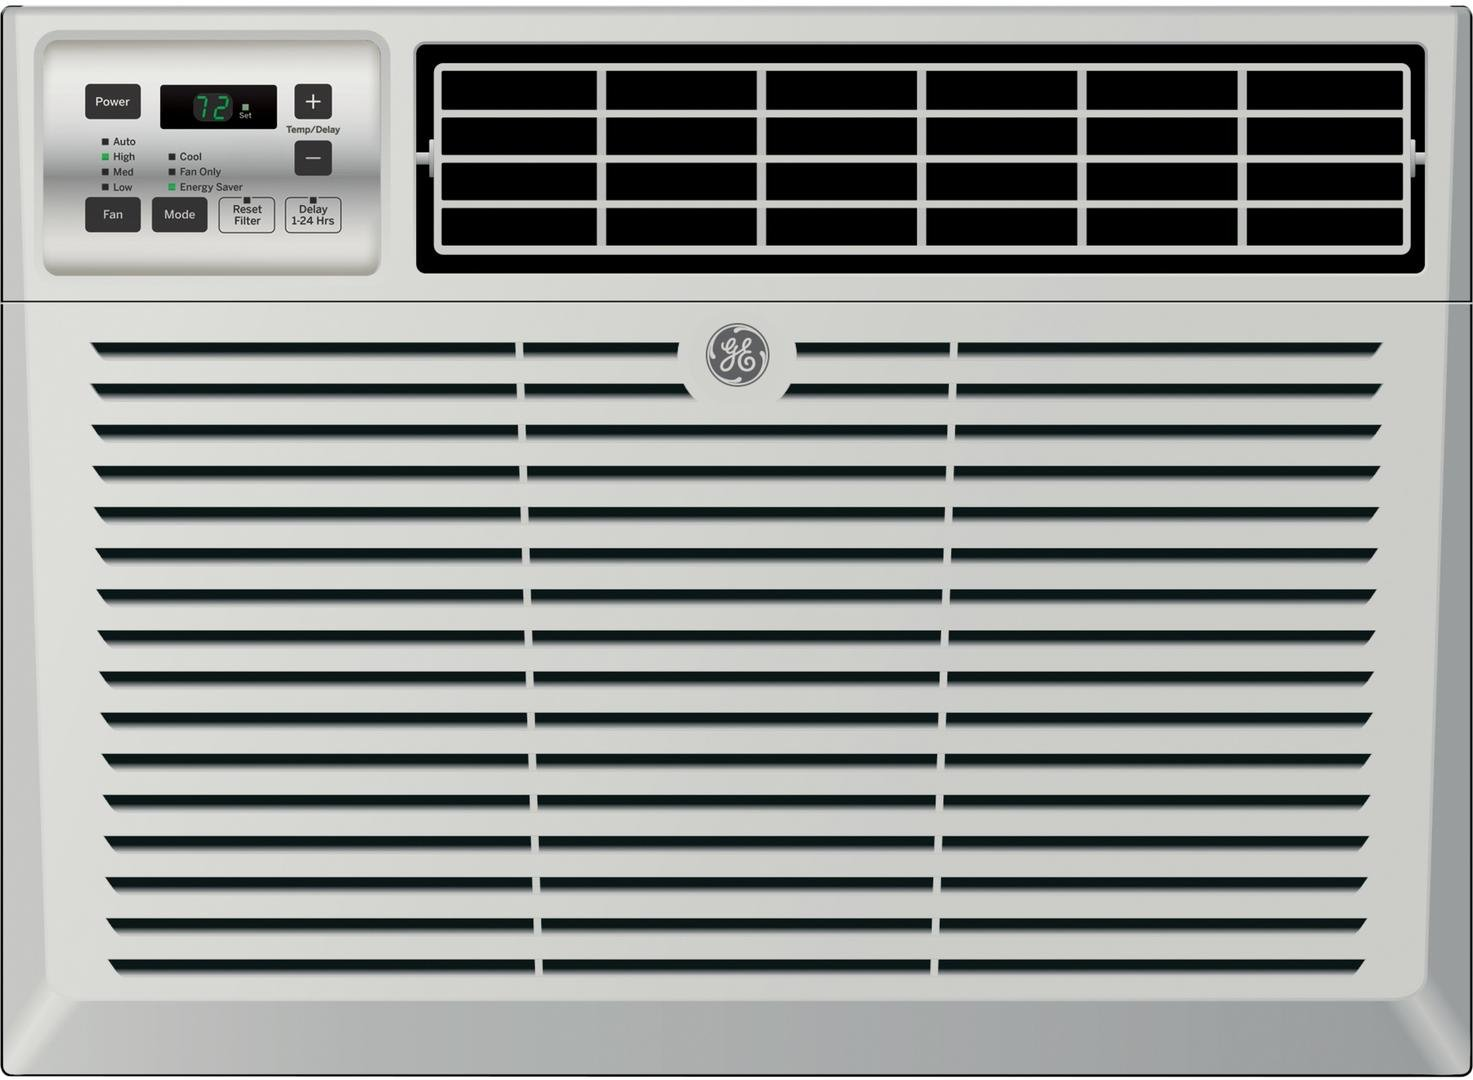 GE AEM08LX  [Fits Windows: 24'' to 38'' W x 13-1/2'' H MIN.] Window Air Conditioner with 8000 Cooling BTU, Energy Star Qualified in Light Cool Gray by GE